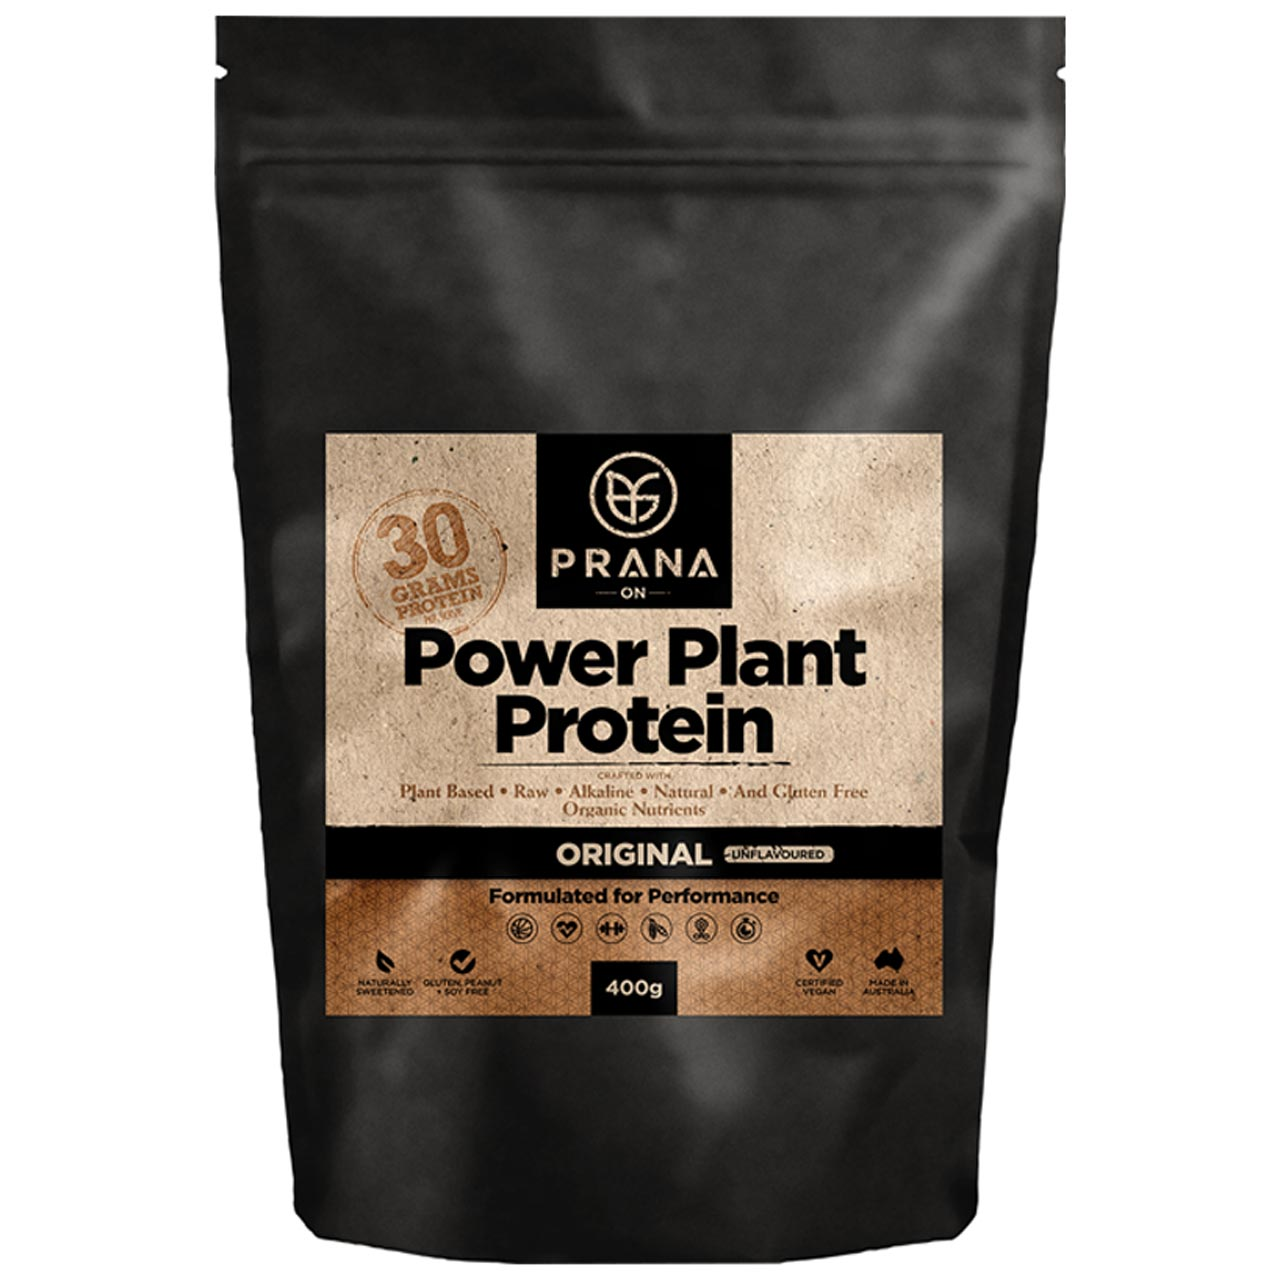 Prana Power Plant Protein -Original